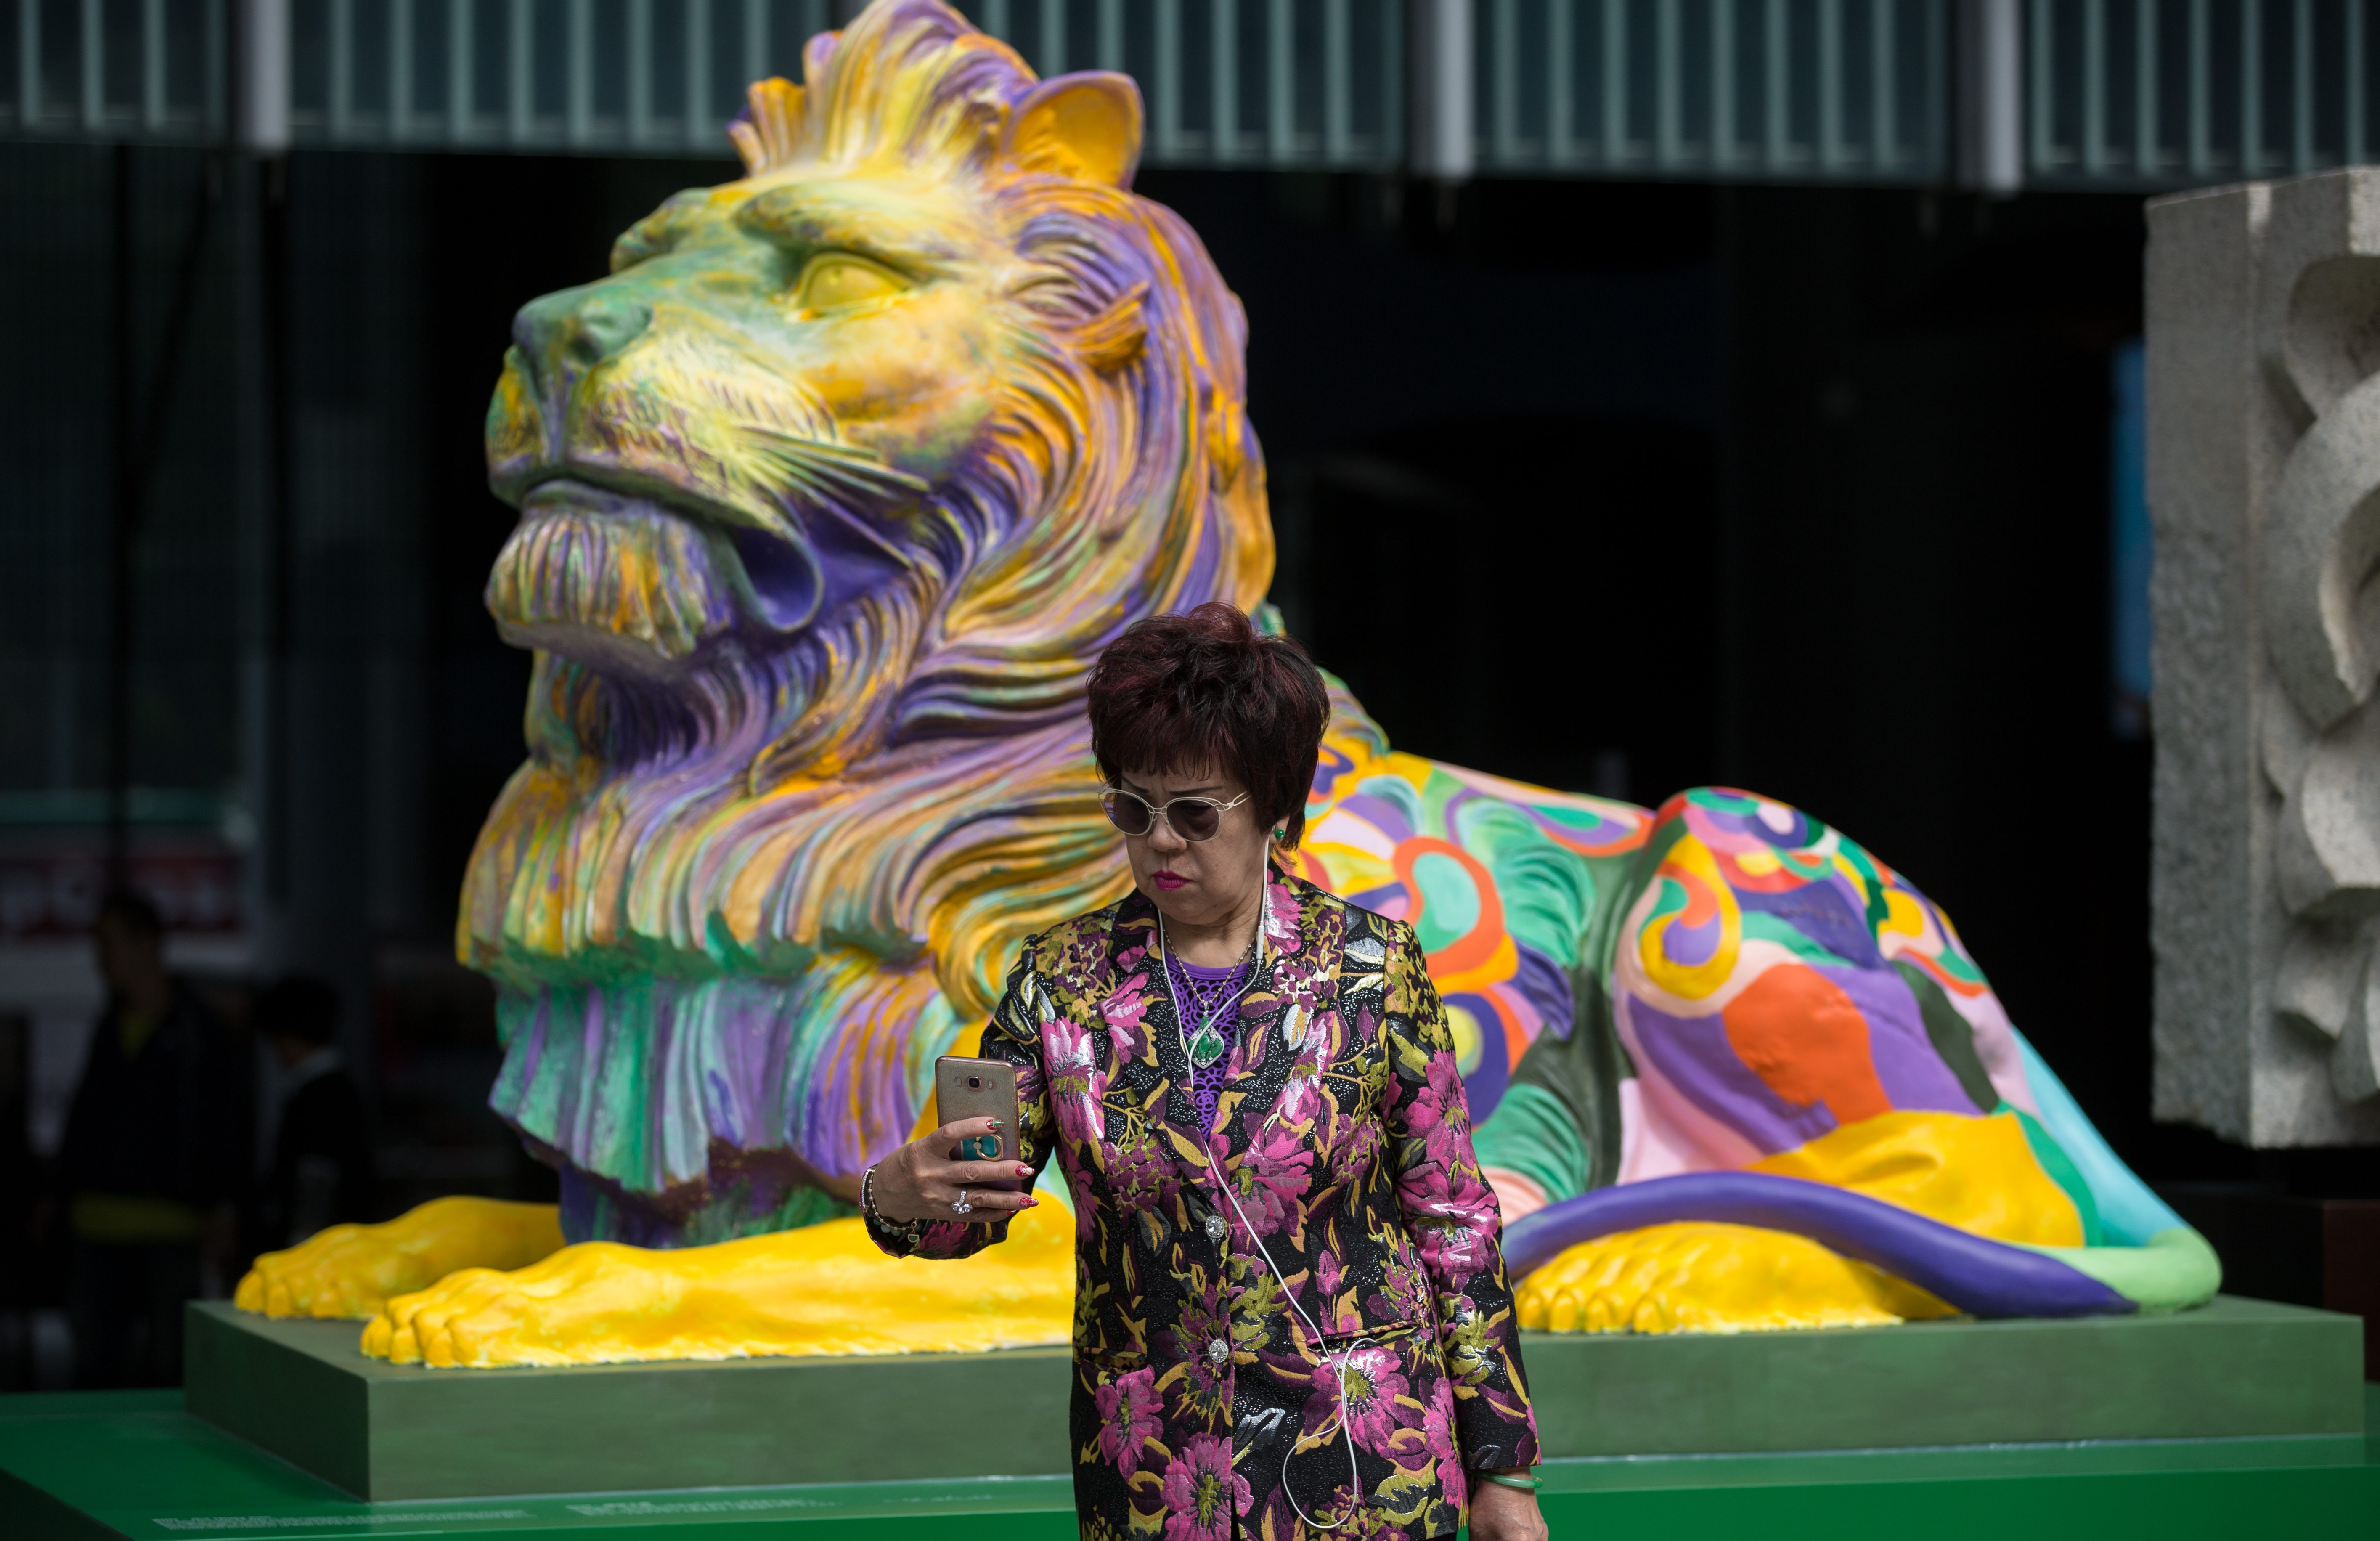 A woman takes a selfie next to a replica of the HSBC lion painted in rainbow colours and displayed outside the bank's headquarters in Hong Kong, China, 06 December 2016. Several groups of activist including The Family School SODO Concern Group, Parents for the Family Association, Overturning LGBT Agenda and Next Generation Orientation have launched a joint online signature campaign expressing disapproval at the display. The groups claimed the rainbow lions have offended both HSBC customers and shareholders. The bank kicked off the 'Celebrate Pride, Celebrate Unity' campaign in November by displaying replicas of the bank's iconic lions in rainbow colours, created by a local LGBT artist, in front of its Hong Kong headquarters.